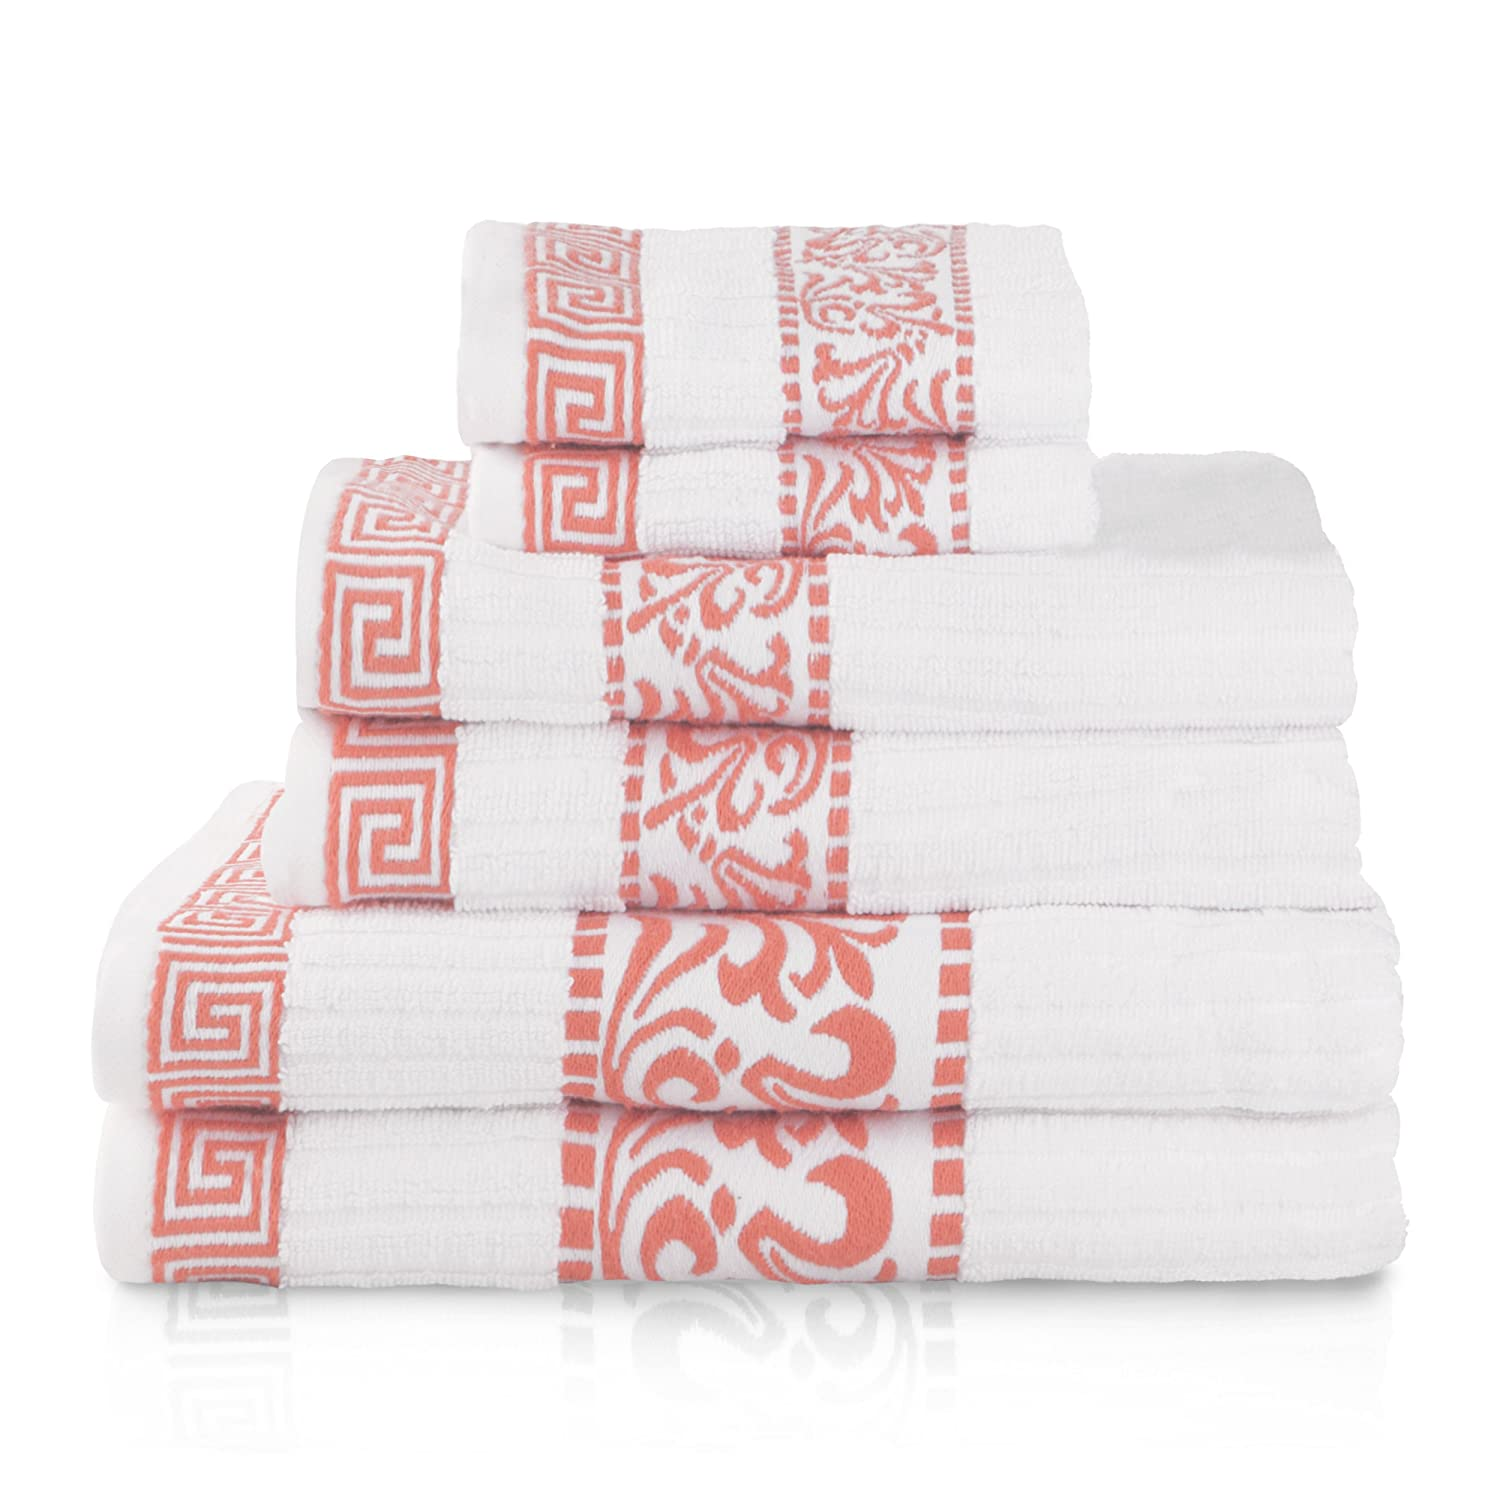 Superior Athens 100% Cotton, Soft, Extremely Absorbent, Beautiful 6 Piece Towel Set, Chocolate ATHENS 6PC SET CH